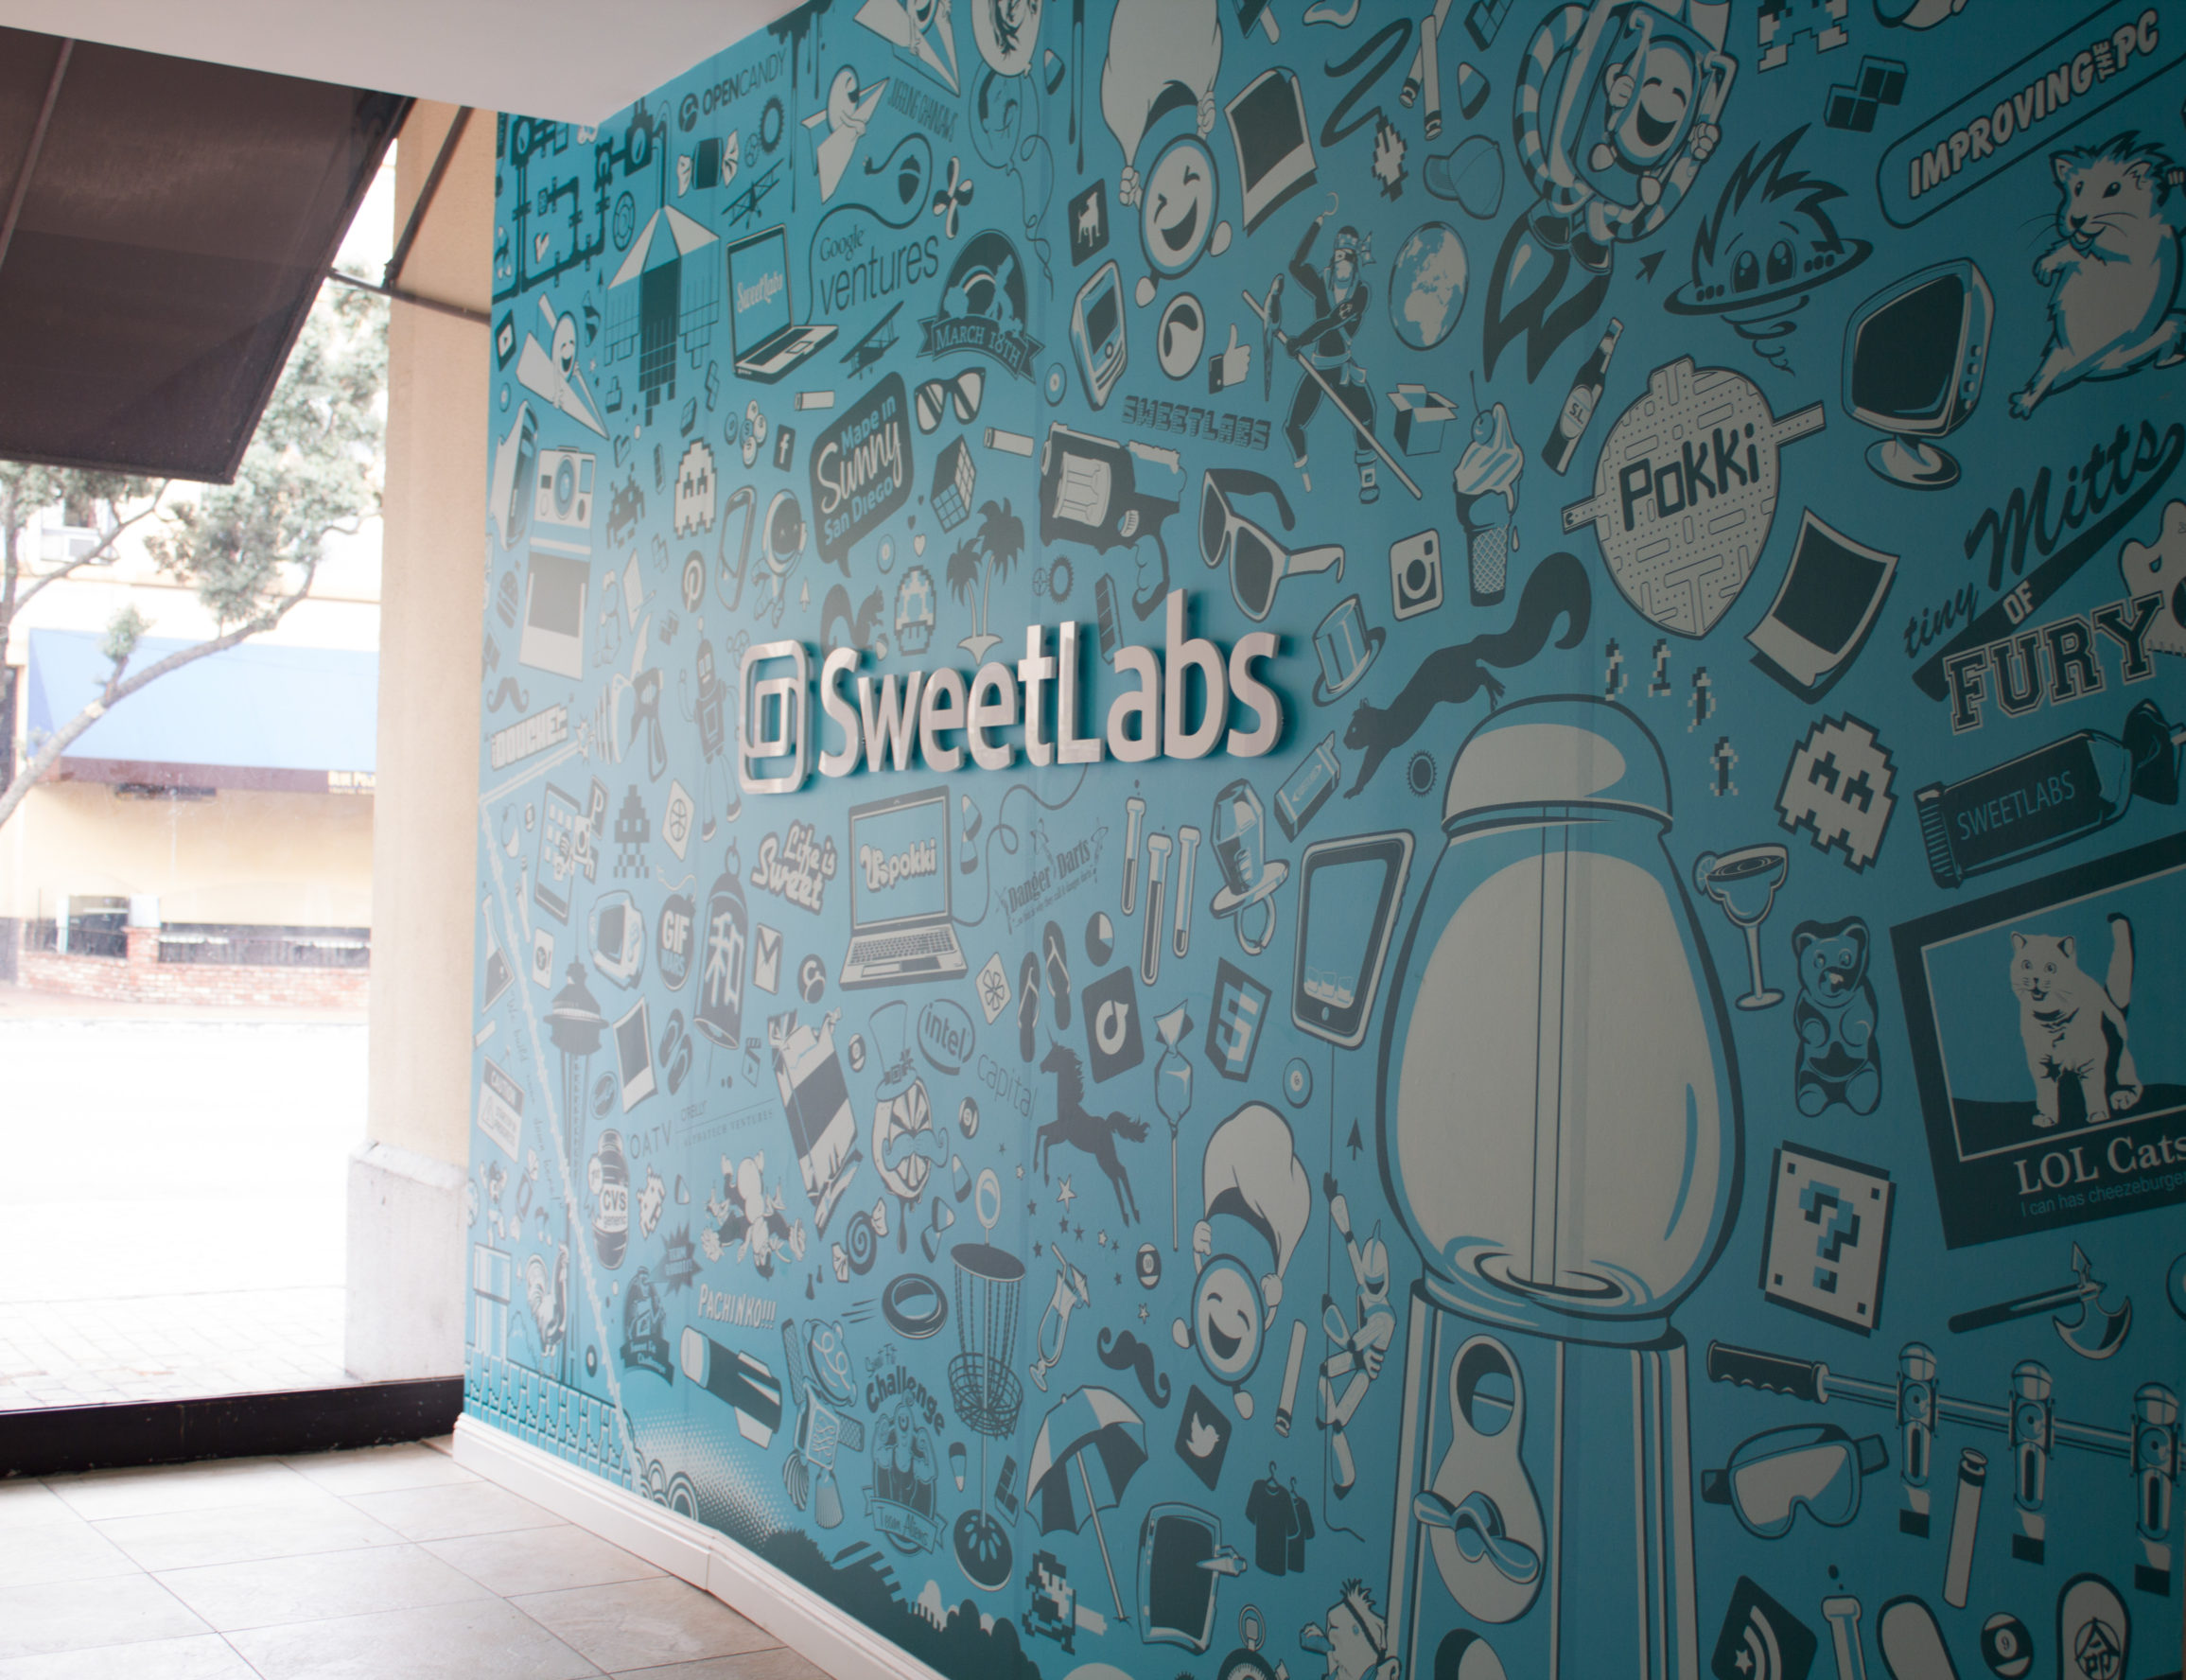 SweetLabs Collage Entrance Sign